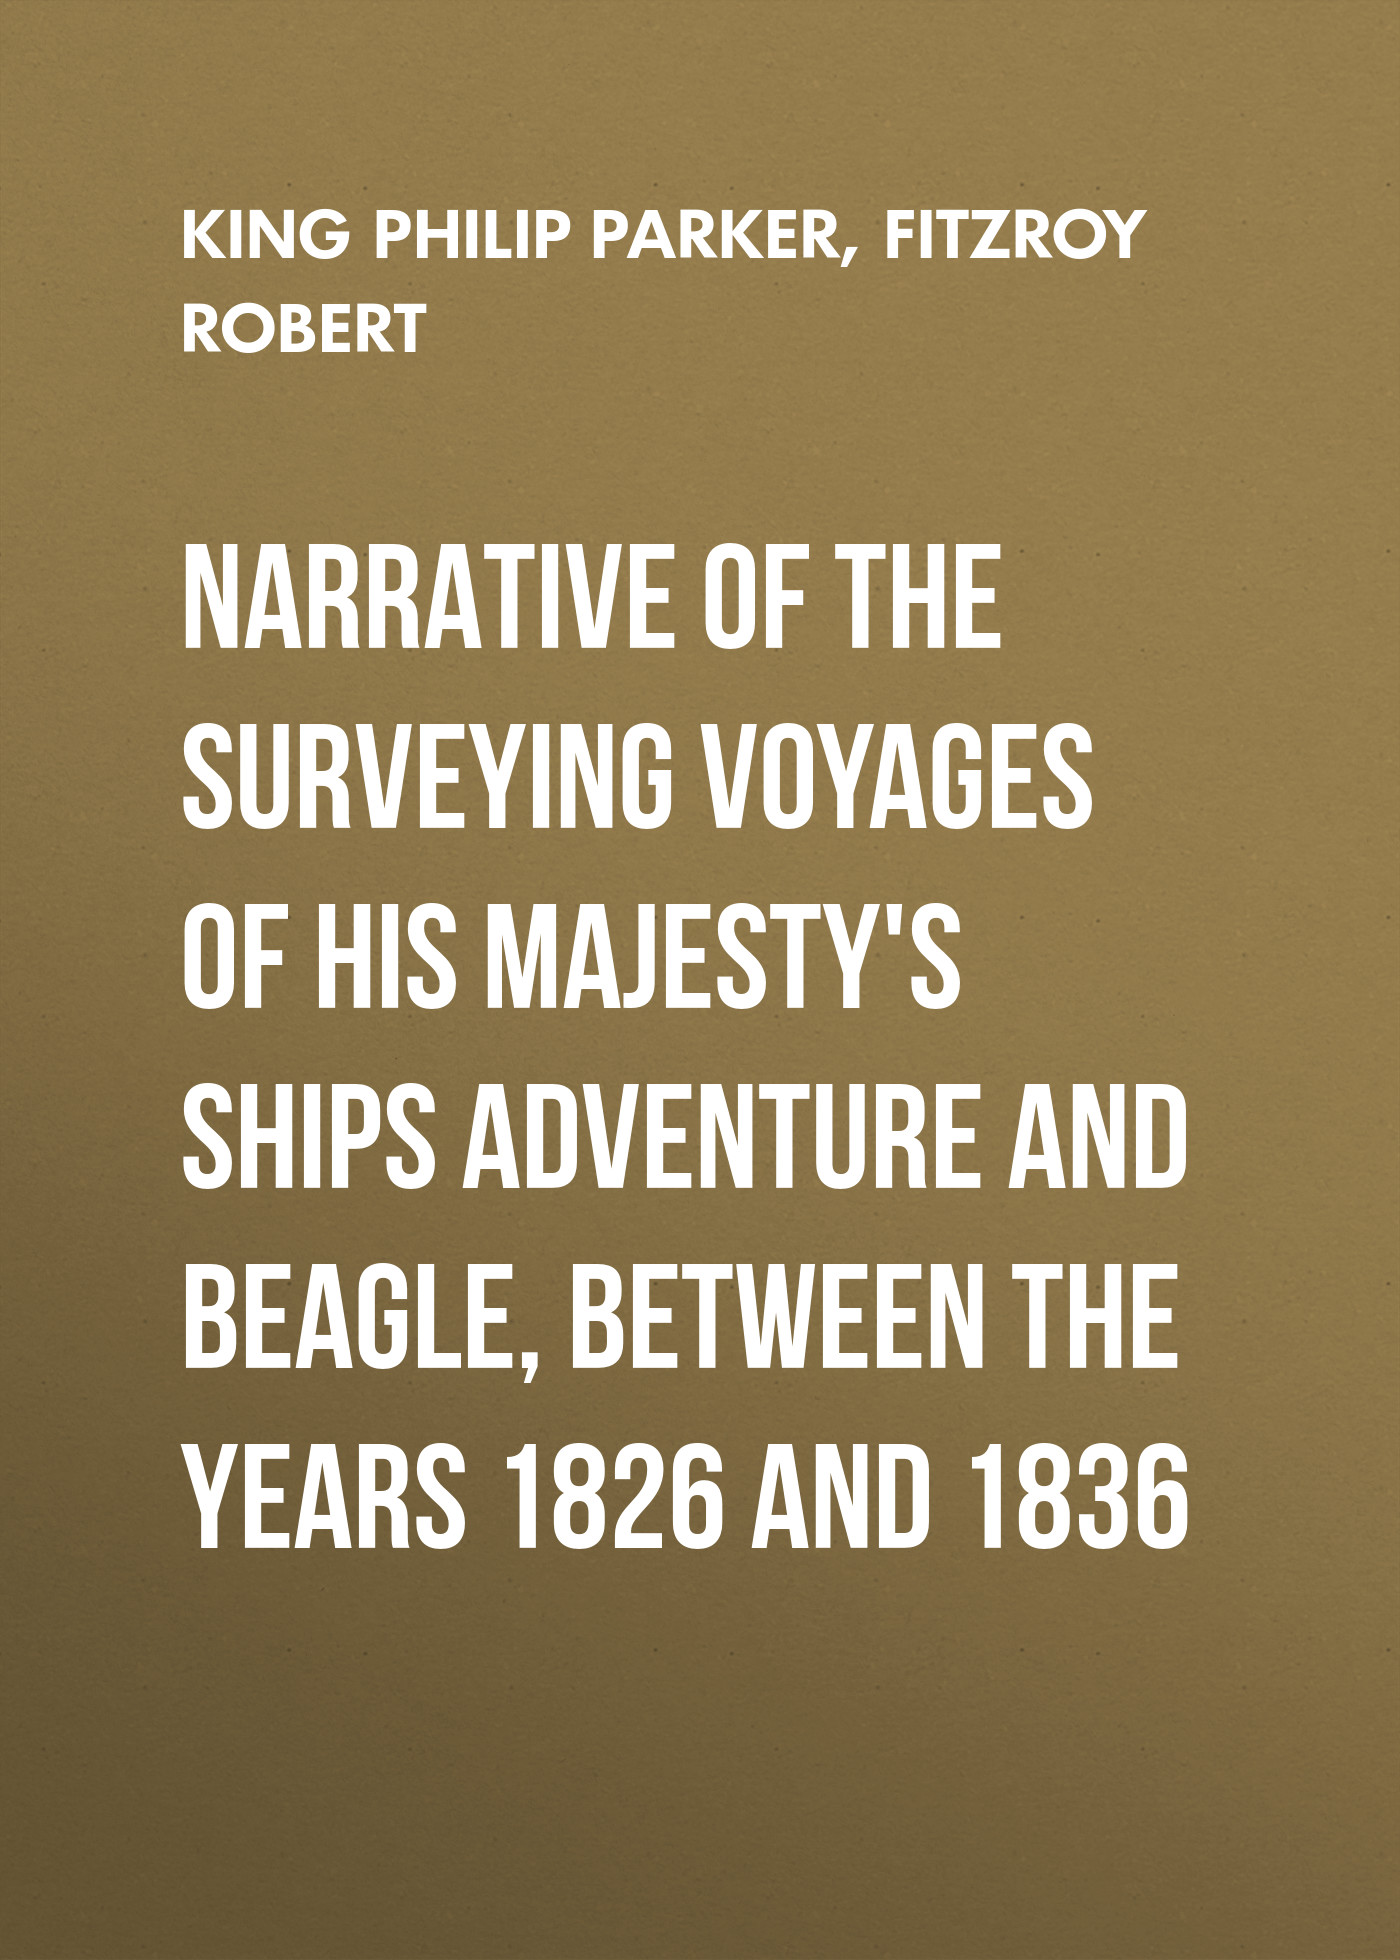 Fitzroy Robert Narrative of the surveying voyages of His Majesty's ships Adventure and Beagle, between the years 1826 and 1836 buchanan robert williams saint abe and his seven wives